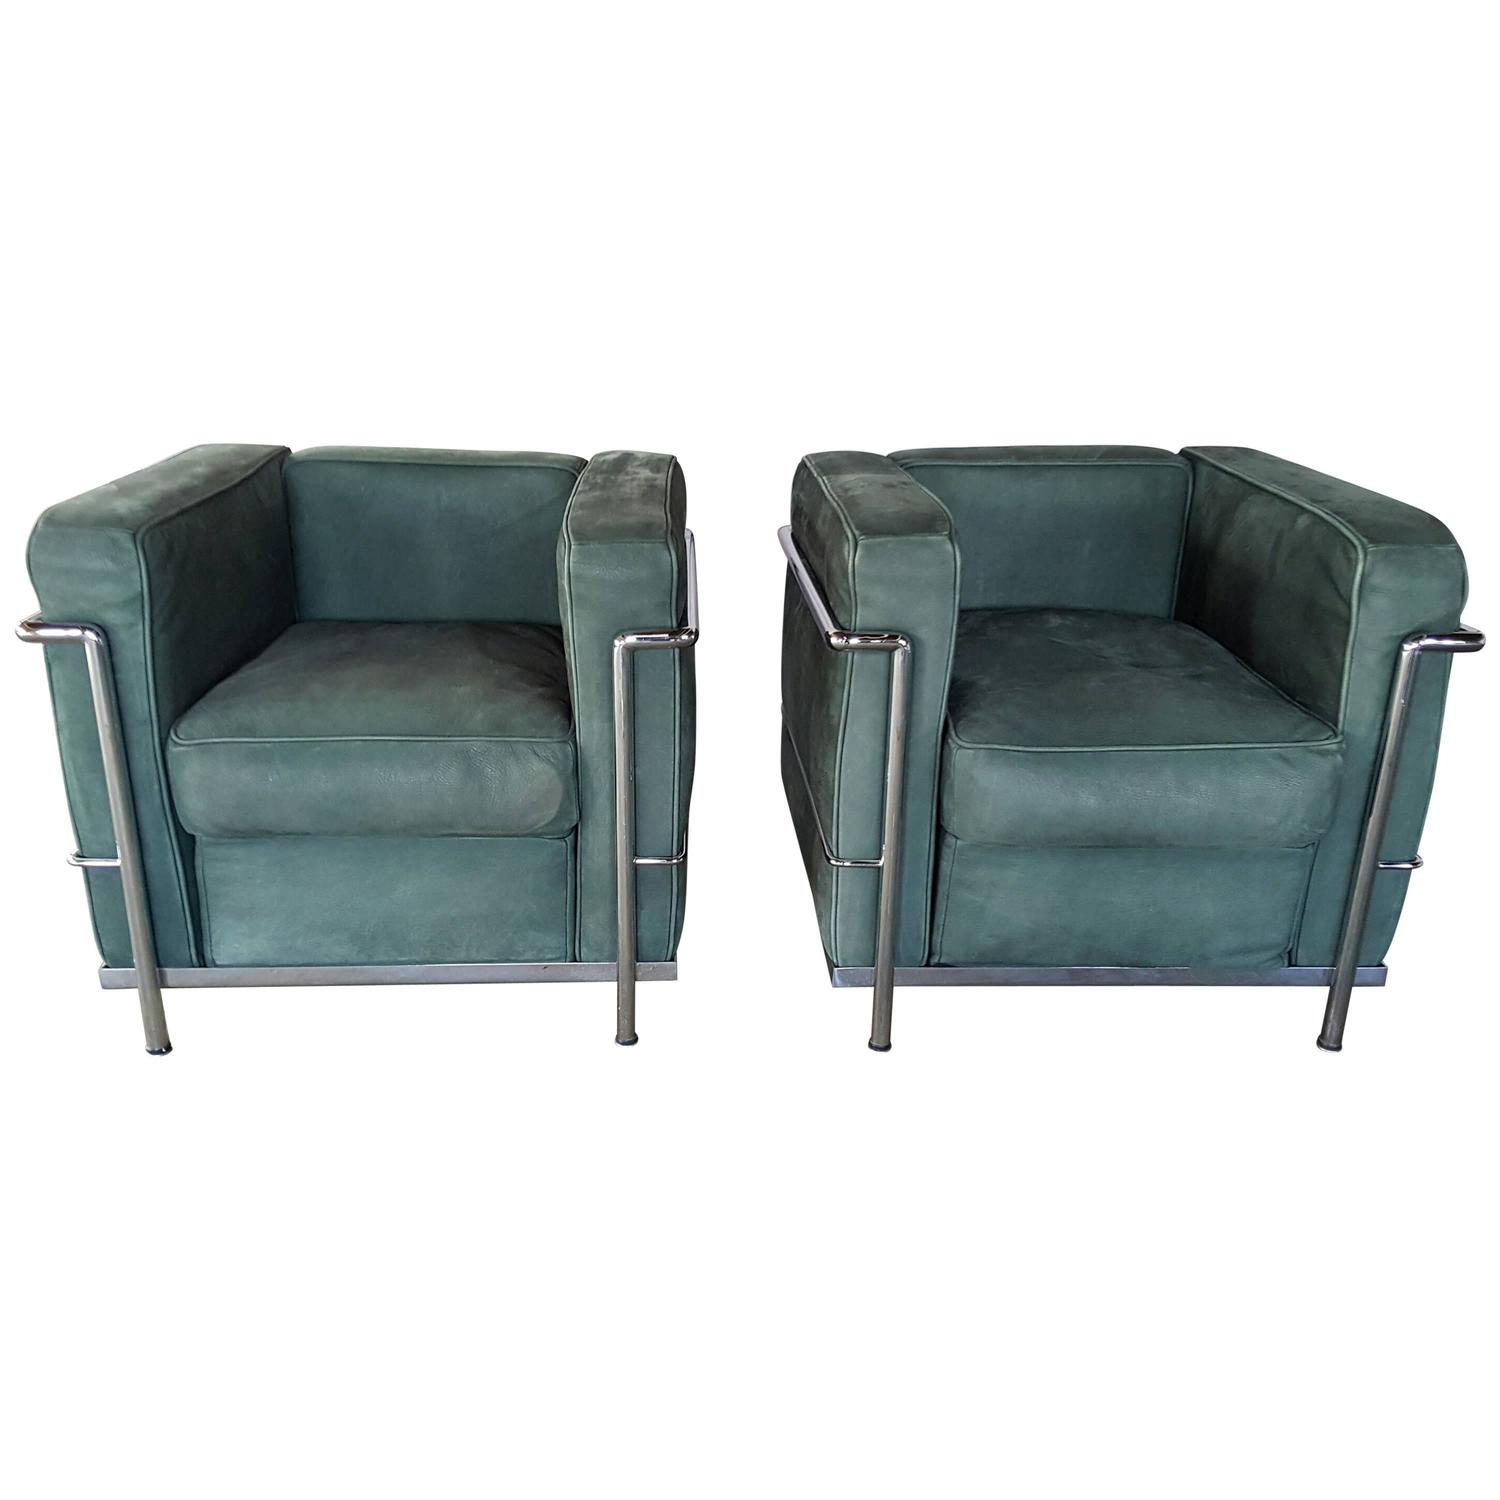 pair of le corbusier lc2 lounge chairs green suede and chrome at 1stdibs. Black Bedroom Furniture Sets. Home Design Ideas